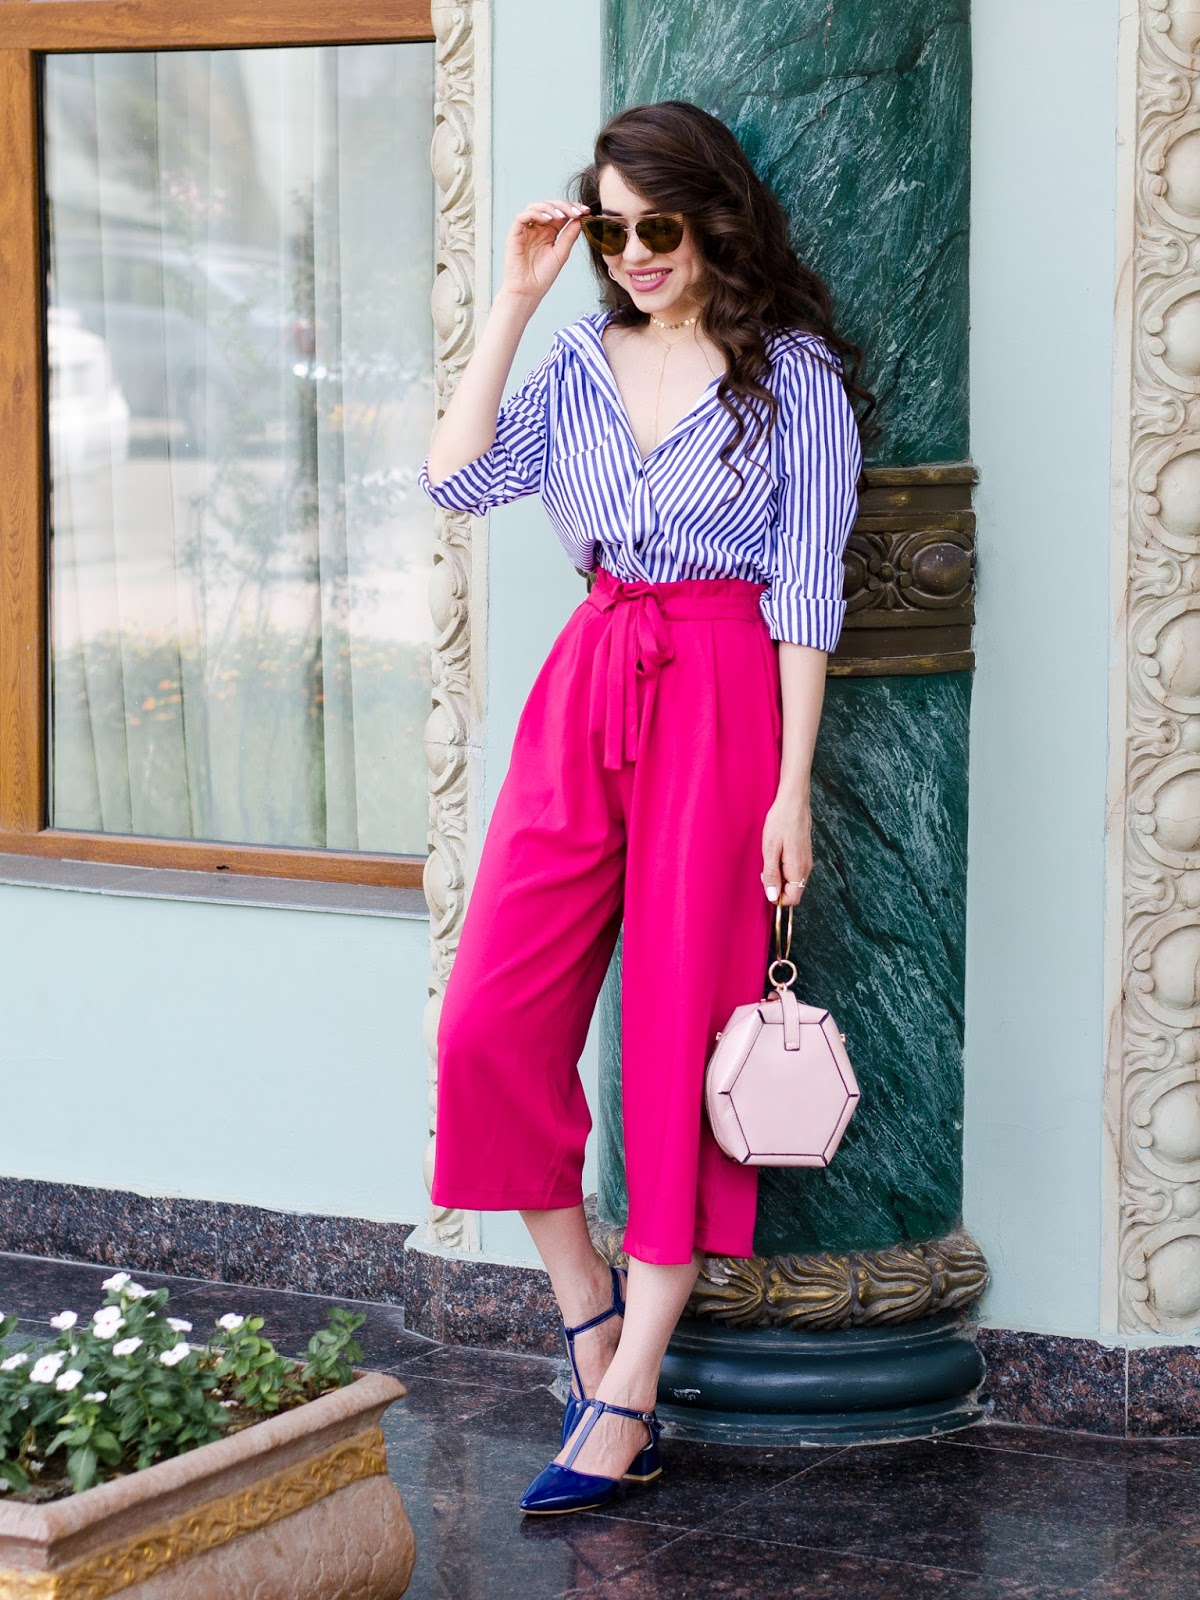 fashion blogger diyorasnotes diyora beta pink culottes striped shirt casual outfit street style 2017 lookoftheday